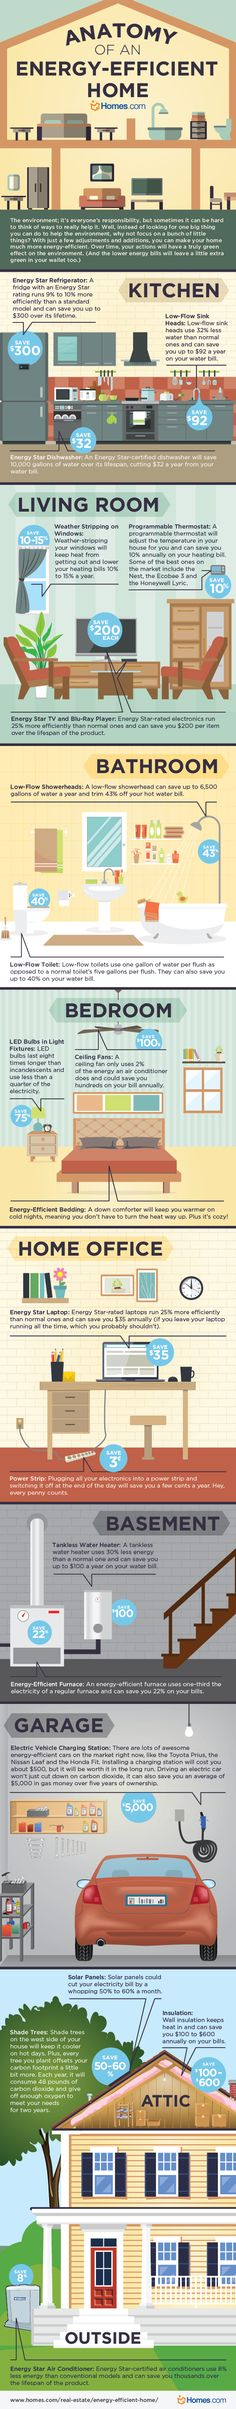 How to Build an Energy Efficient Home Infographic. Topic: green building, home improvement, energy star appliance, house interior design. Energy Saving Tips, Save Energy, Energy Efficient Homes, Energy Efficiency, Green Building, Building A House, Home Design, Home Interior Design, Energy Star Appliances